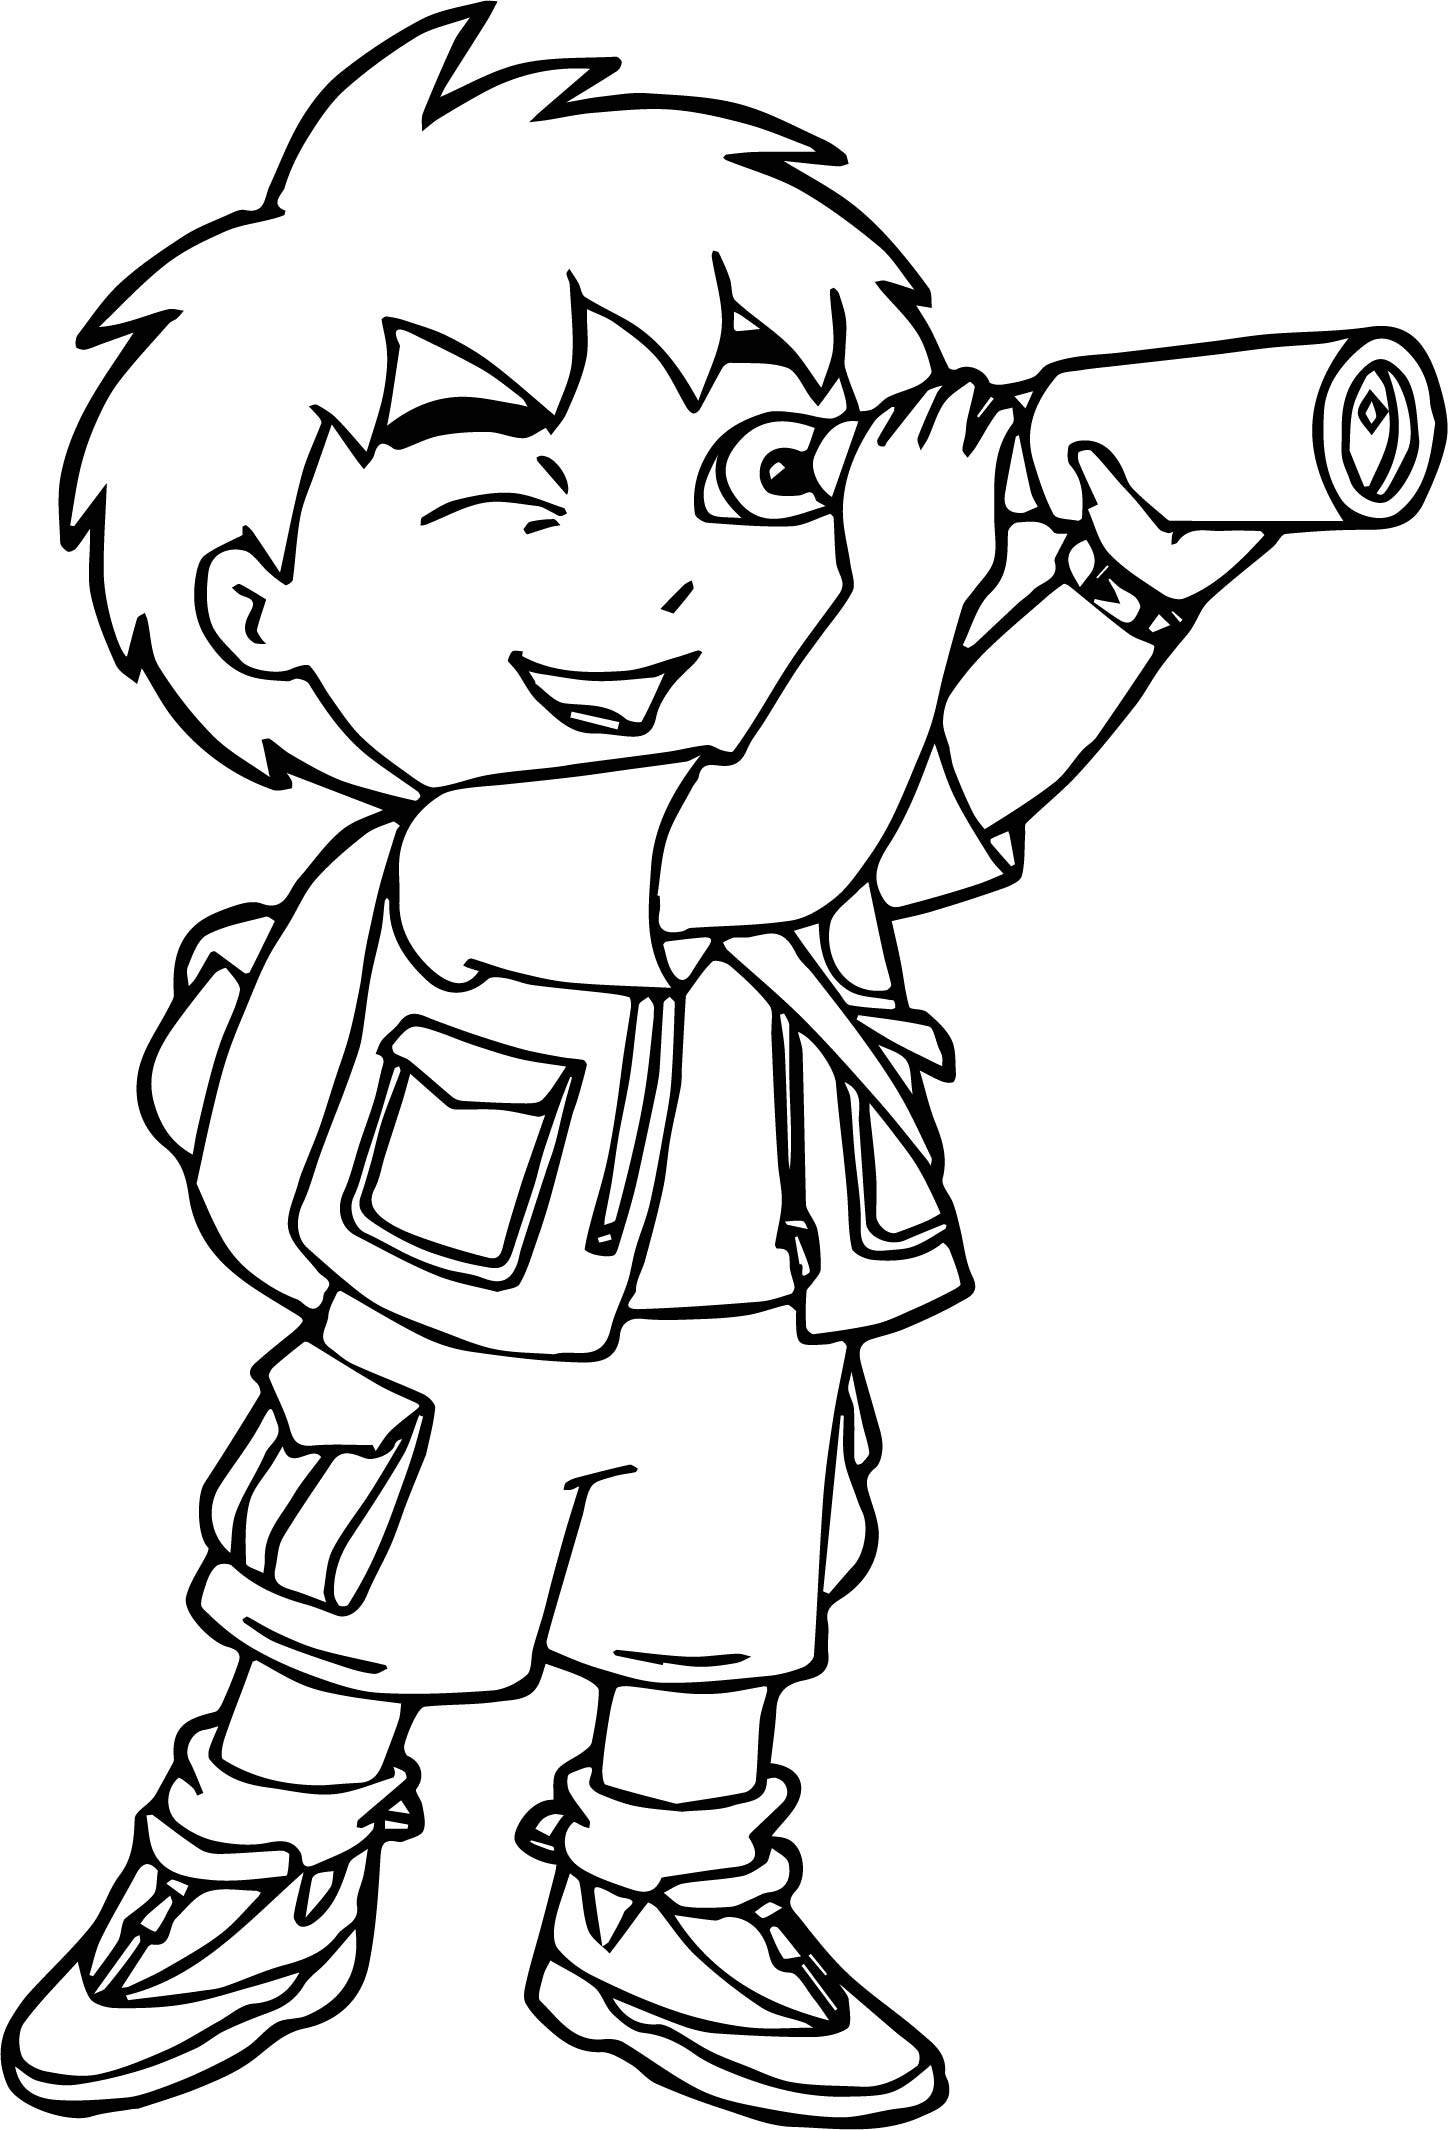 Go Diego Go Watching Coloring Page Wecoloringpage Com